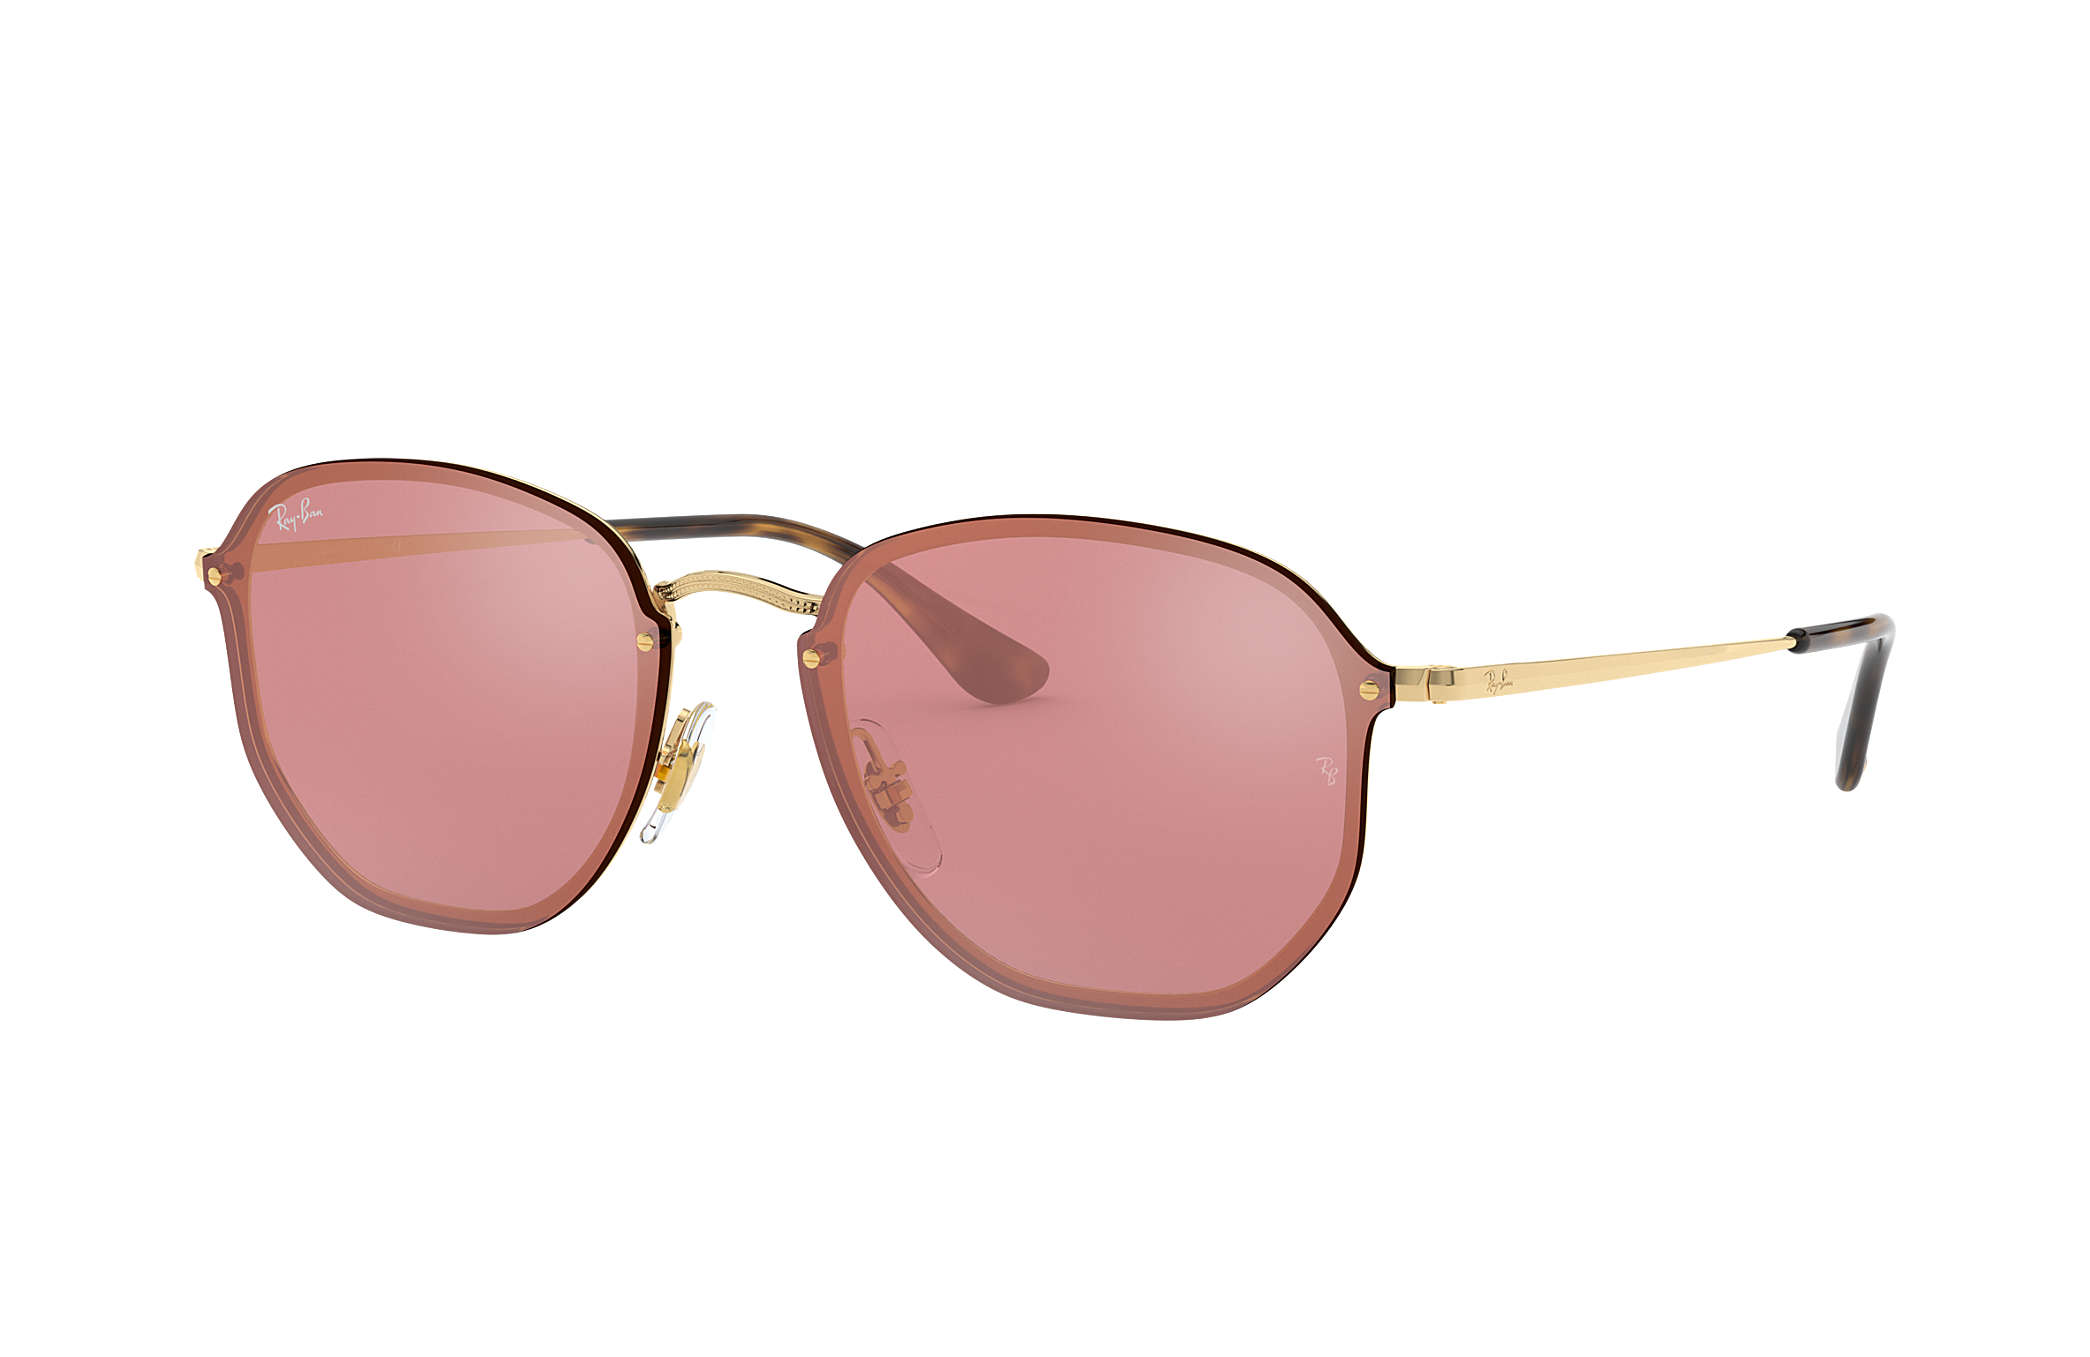 1c4e7321b2389 Ray-Ban Blaze Hexagonal RB3579N Gold - Metal - Pink Lenses ...